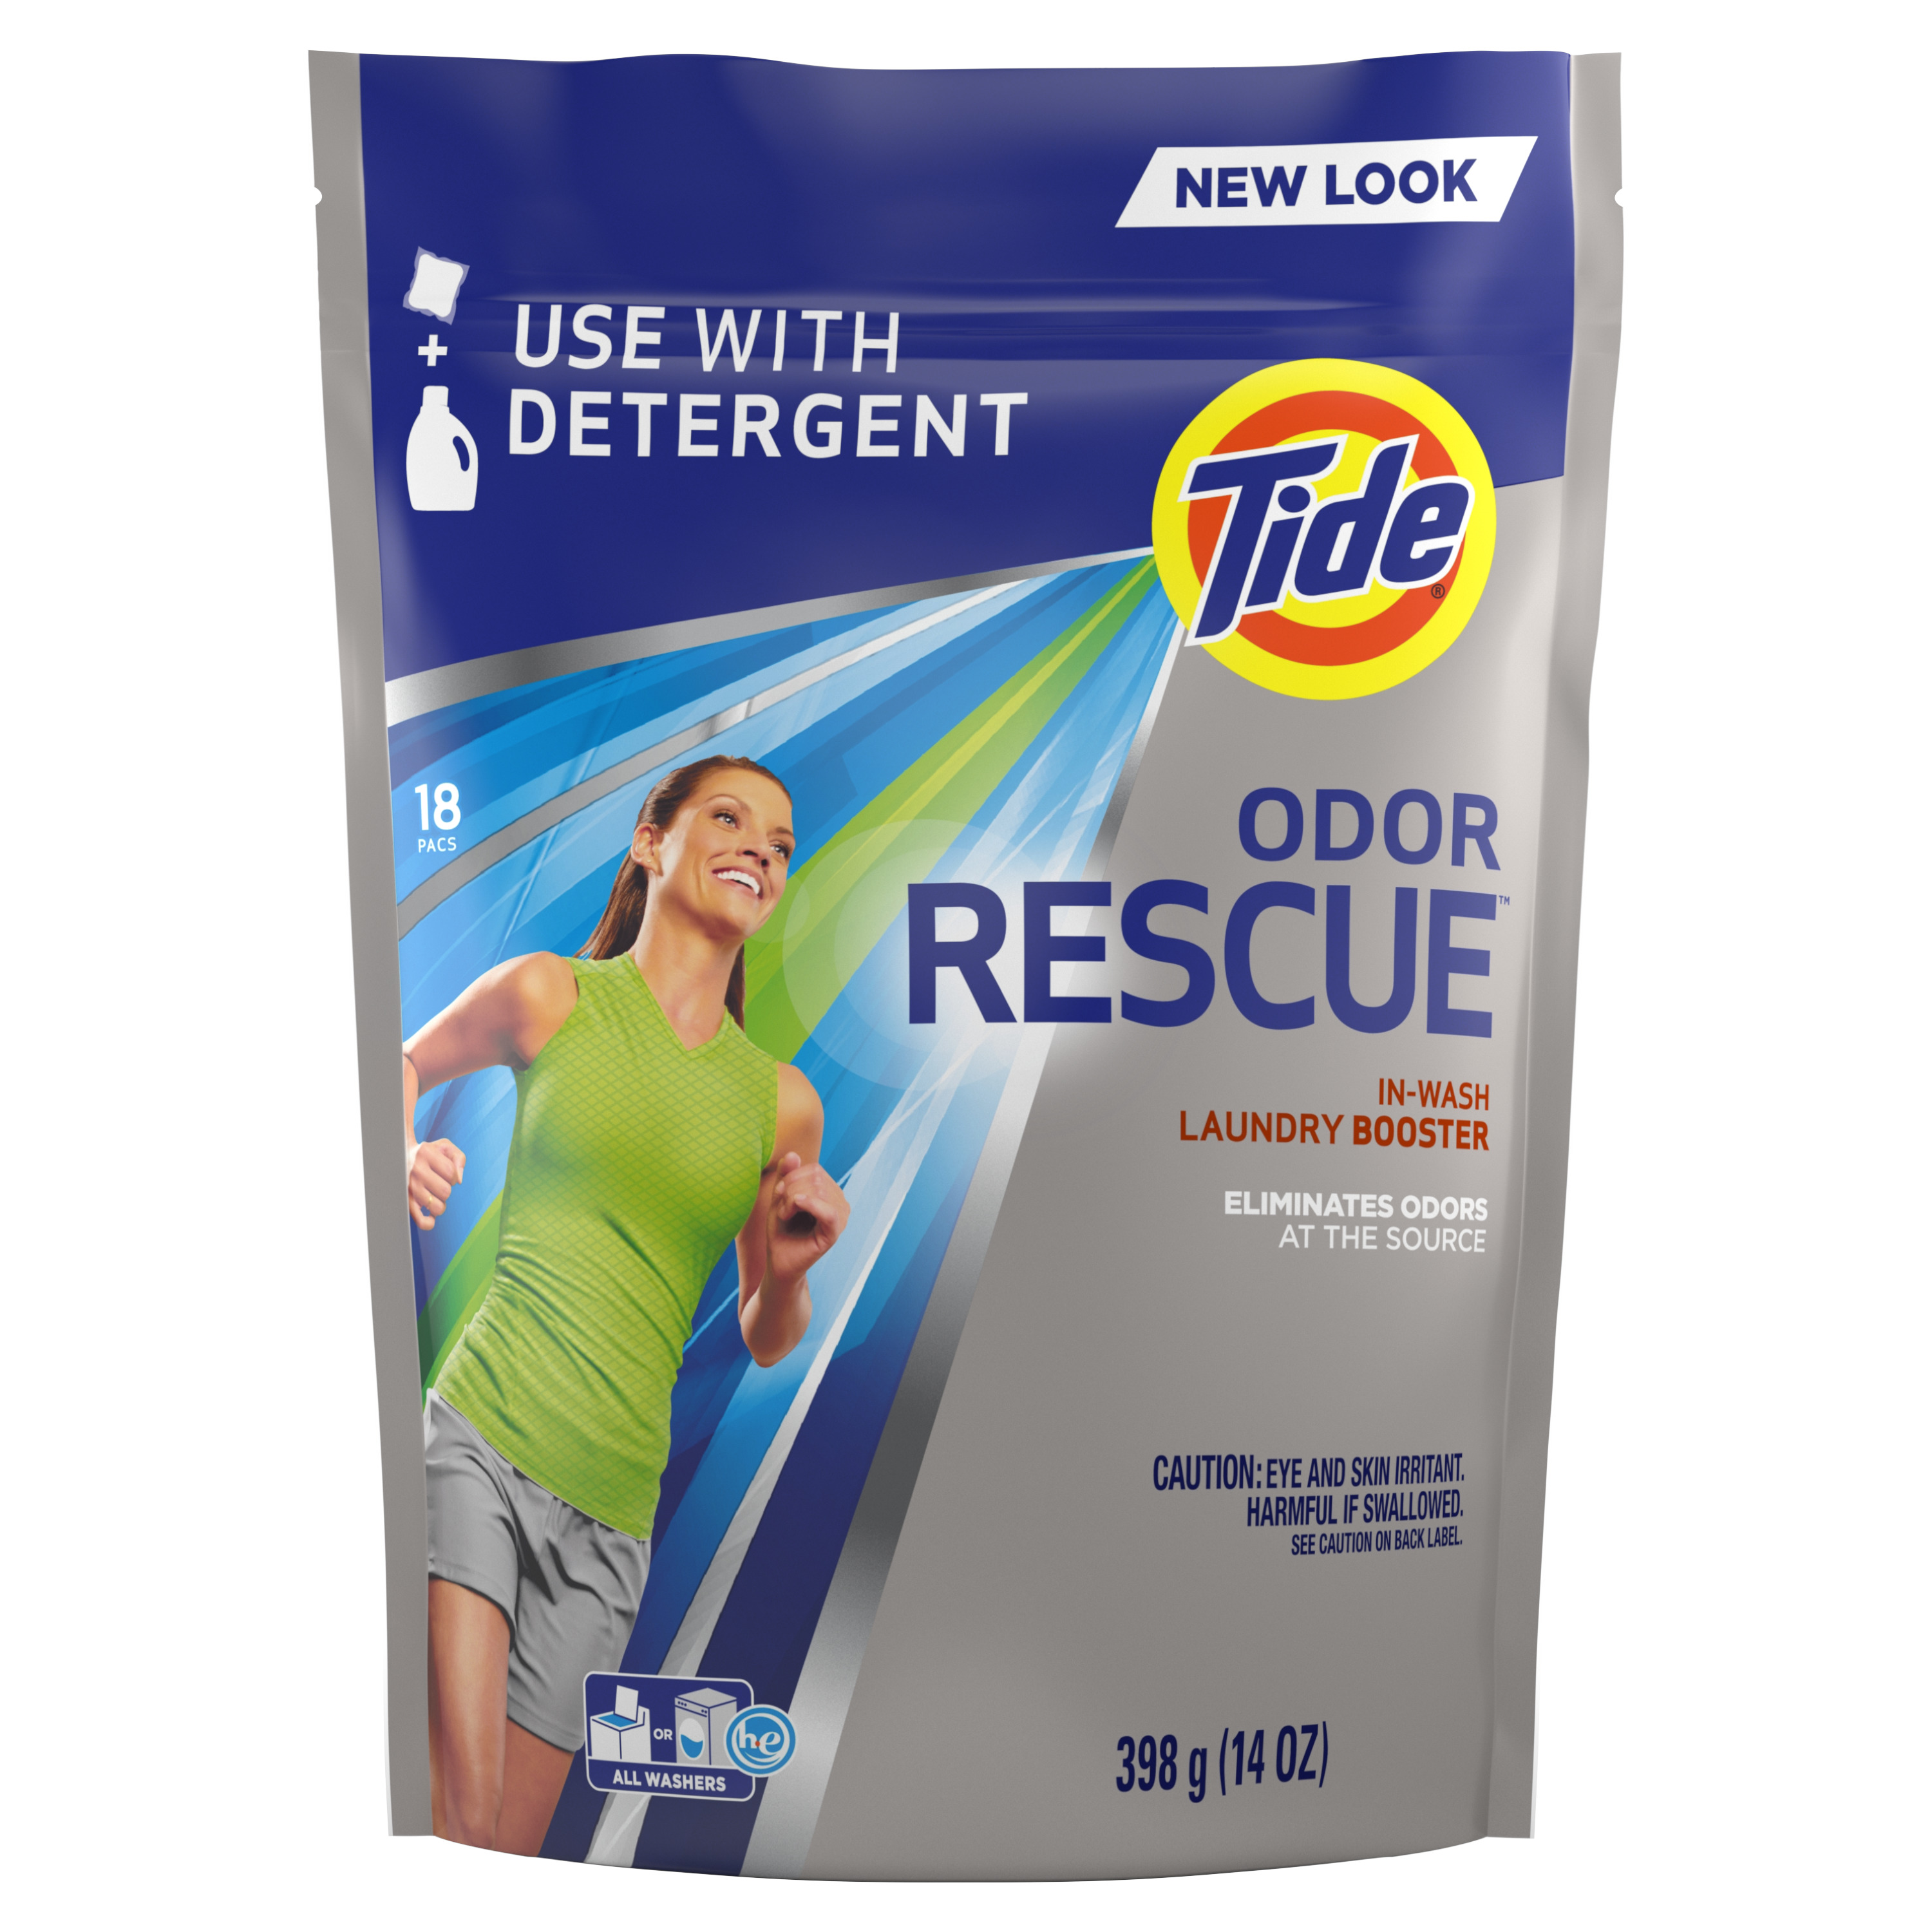 Tide Odor Rescue In-Wash Laundry Booster, 18 pacs